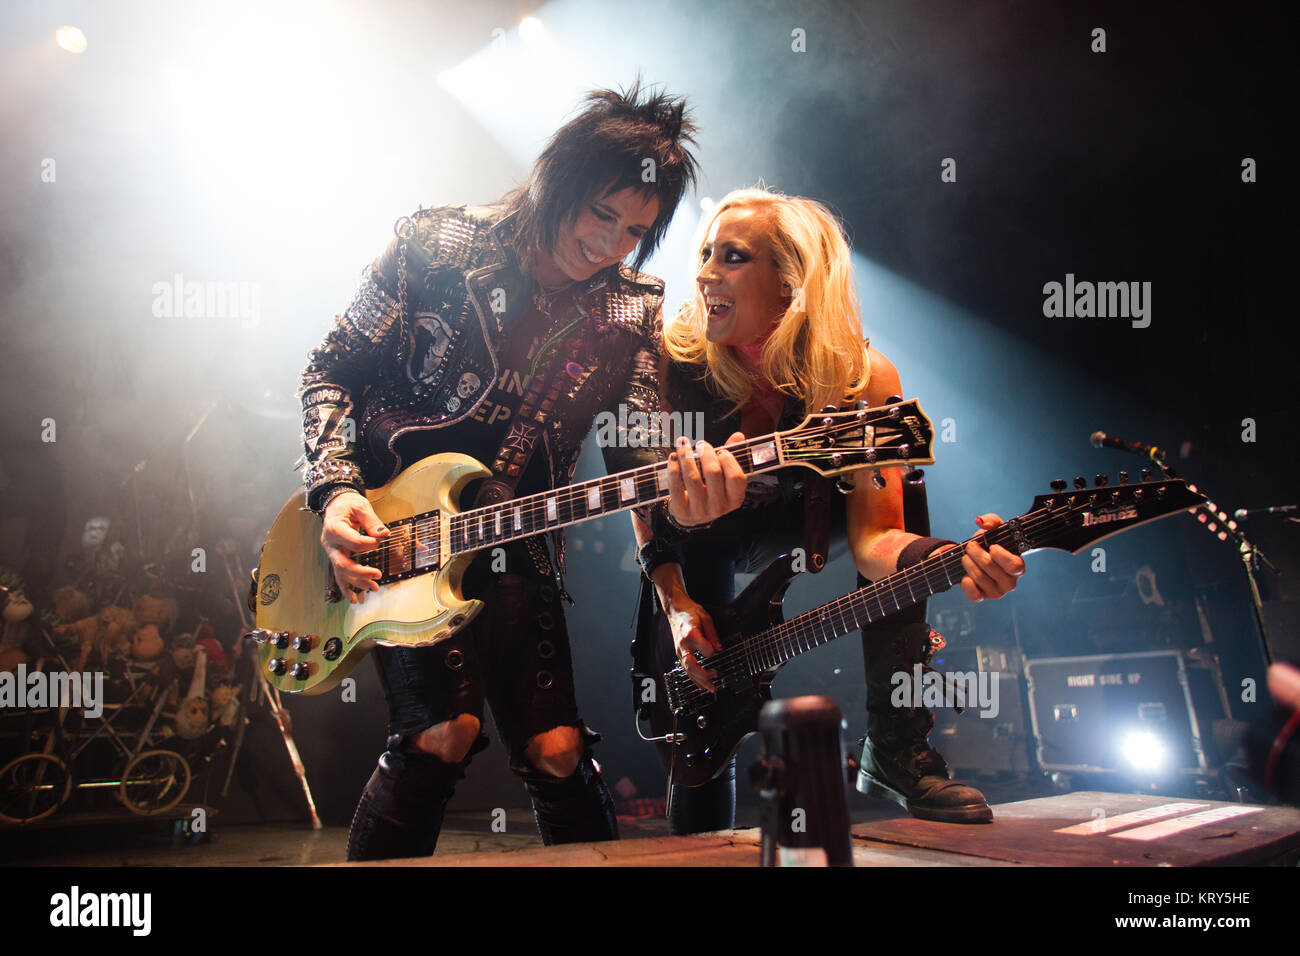 The American singer, songwriter and musician Alice Cooper performs a live concert at Sentrum Scene in Oslo. Here - Stock Image